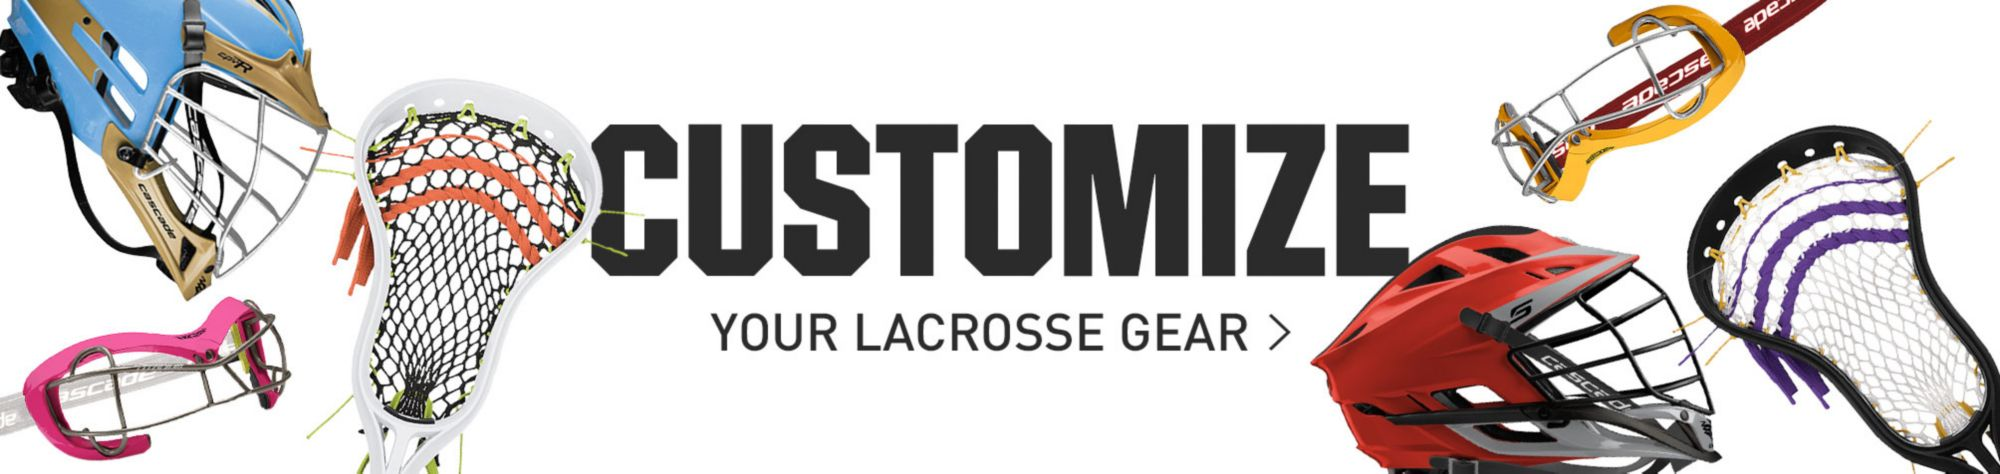 Customize Your Lacrosse Gear